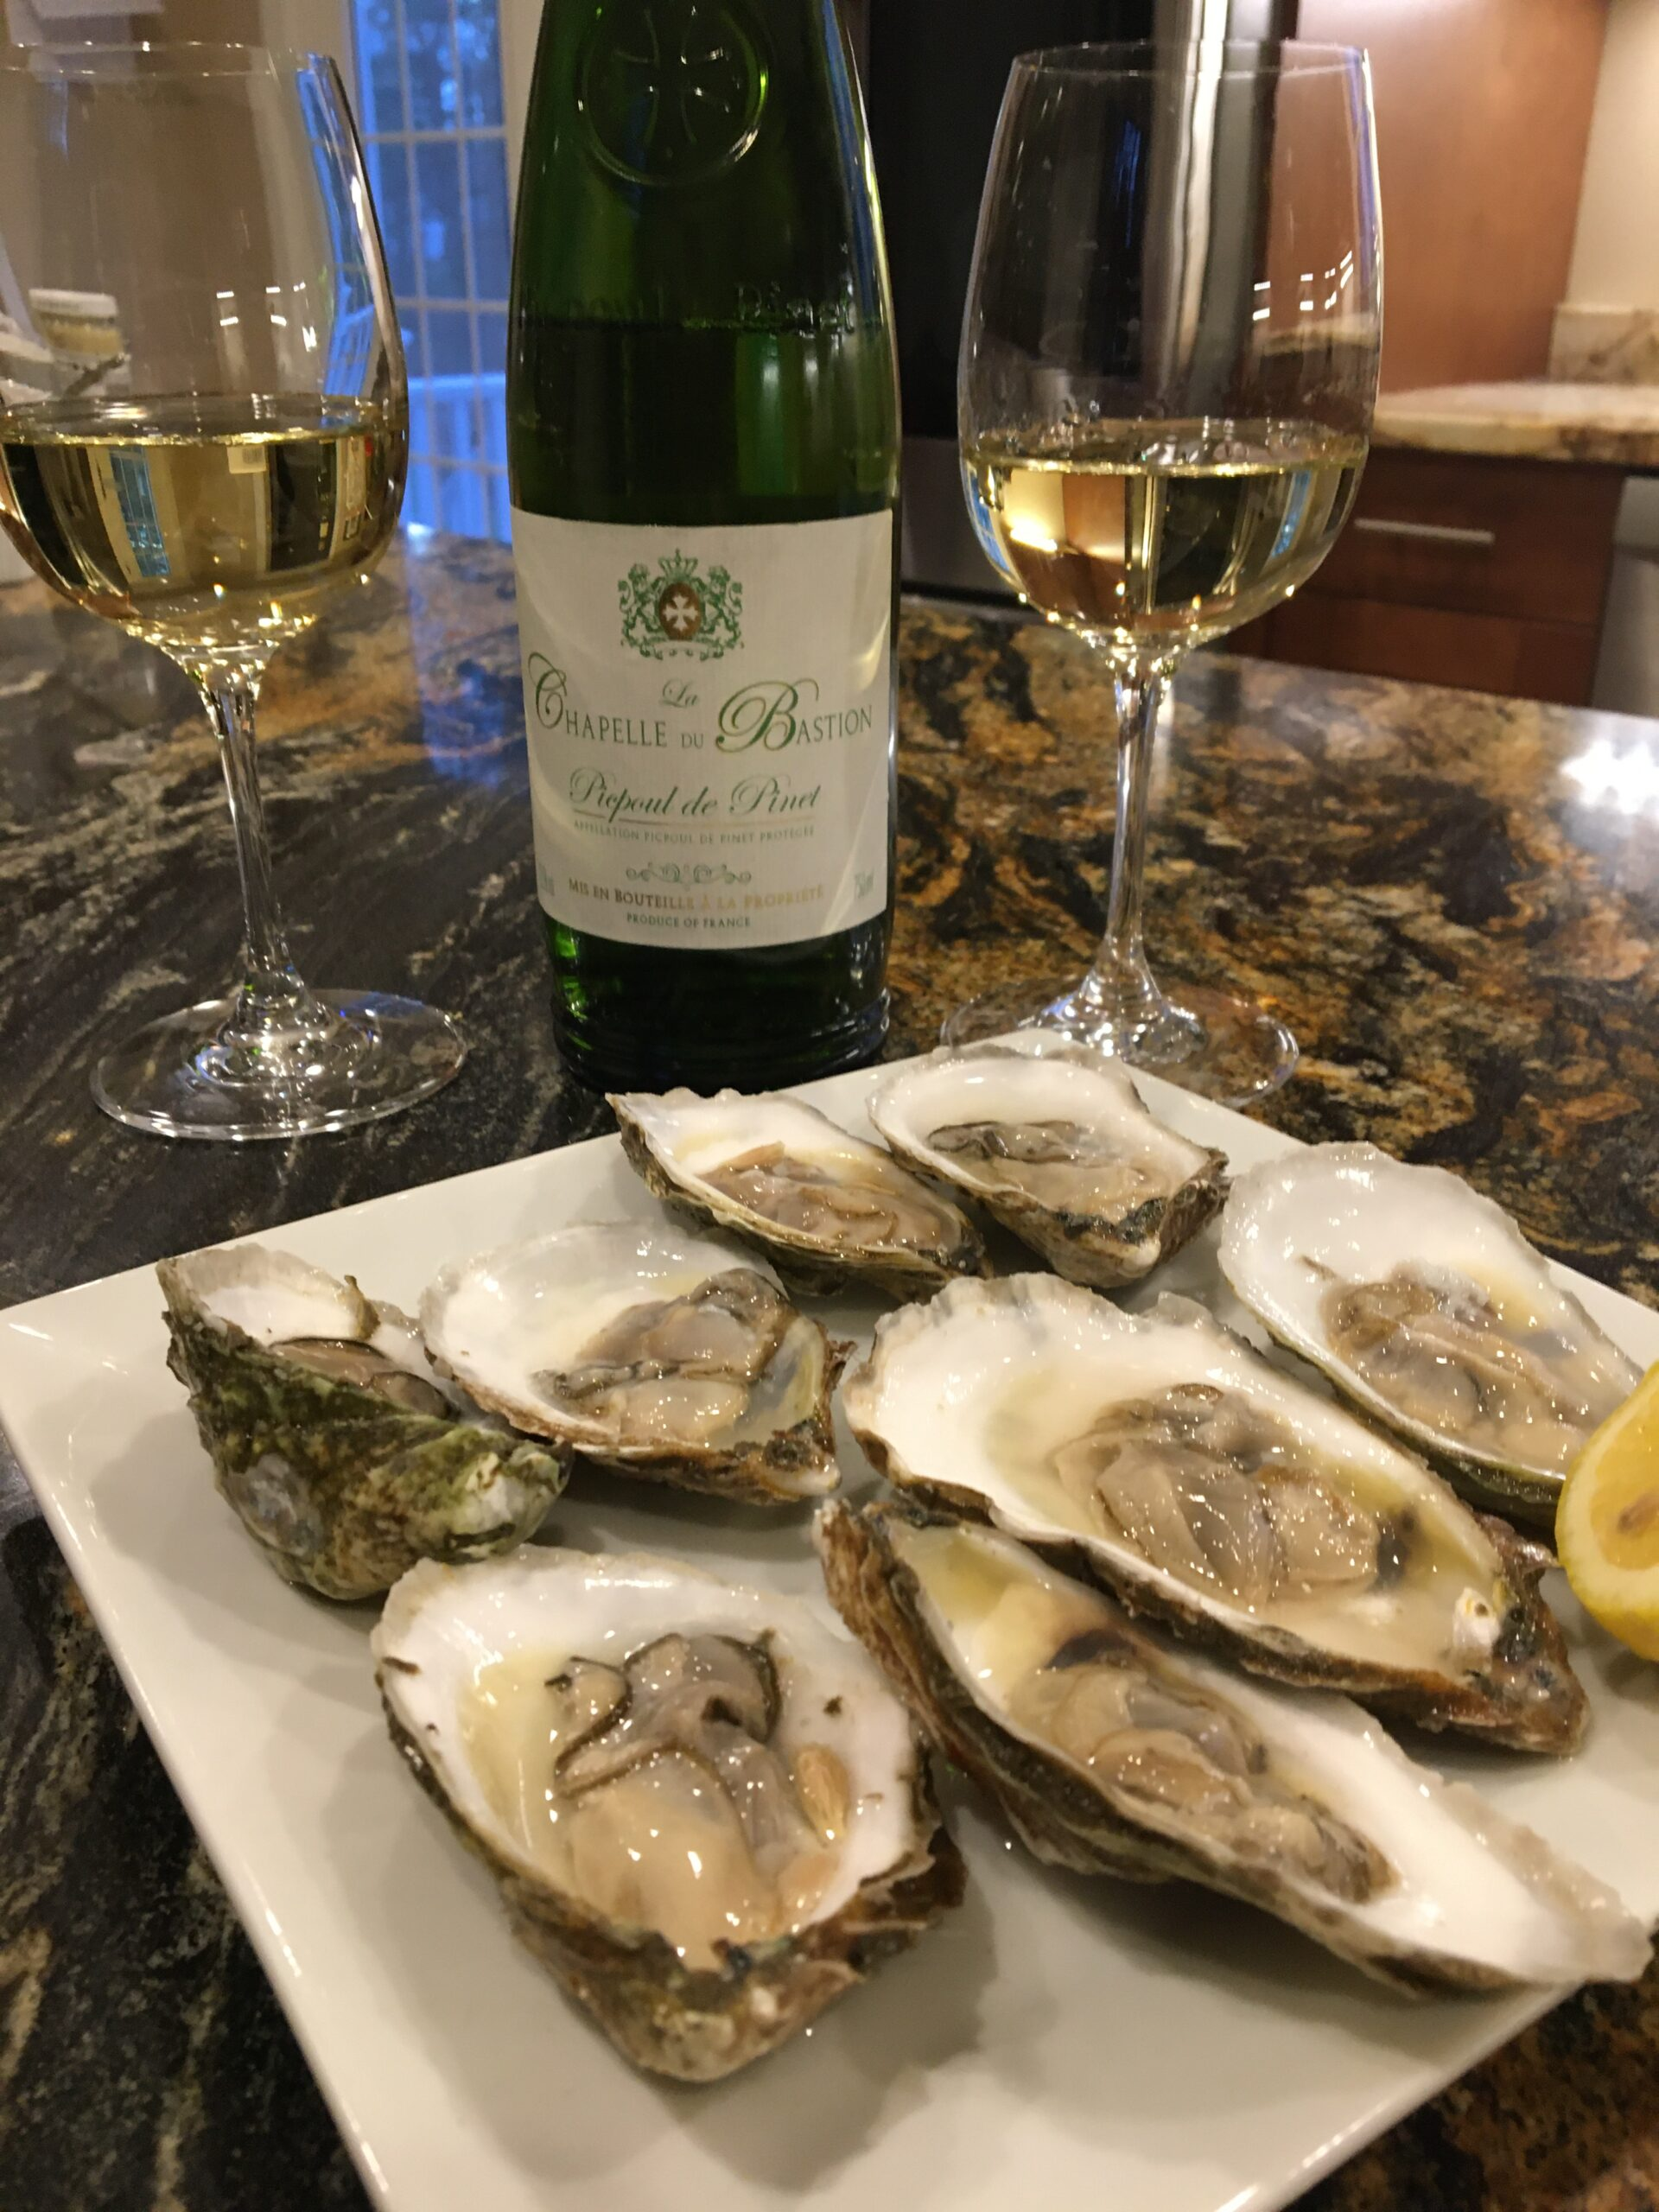 Picpoul southern france white wine